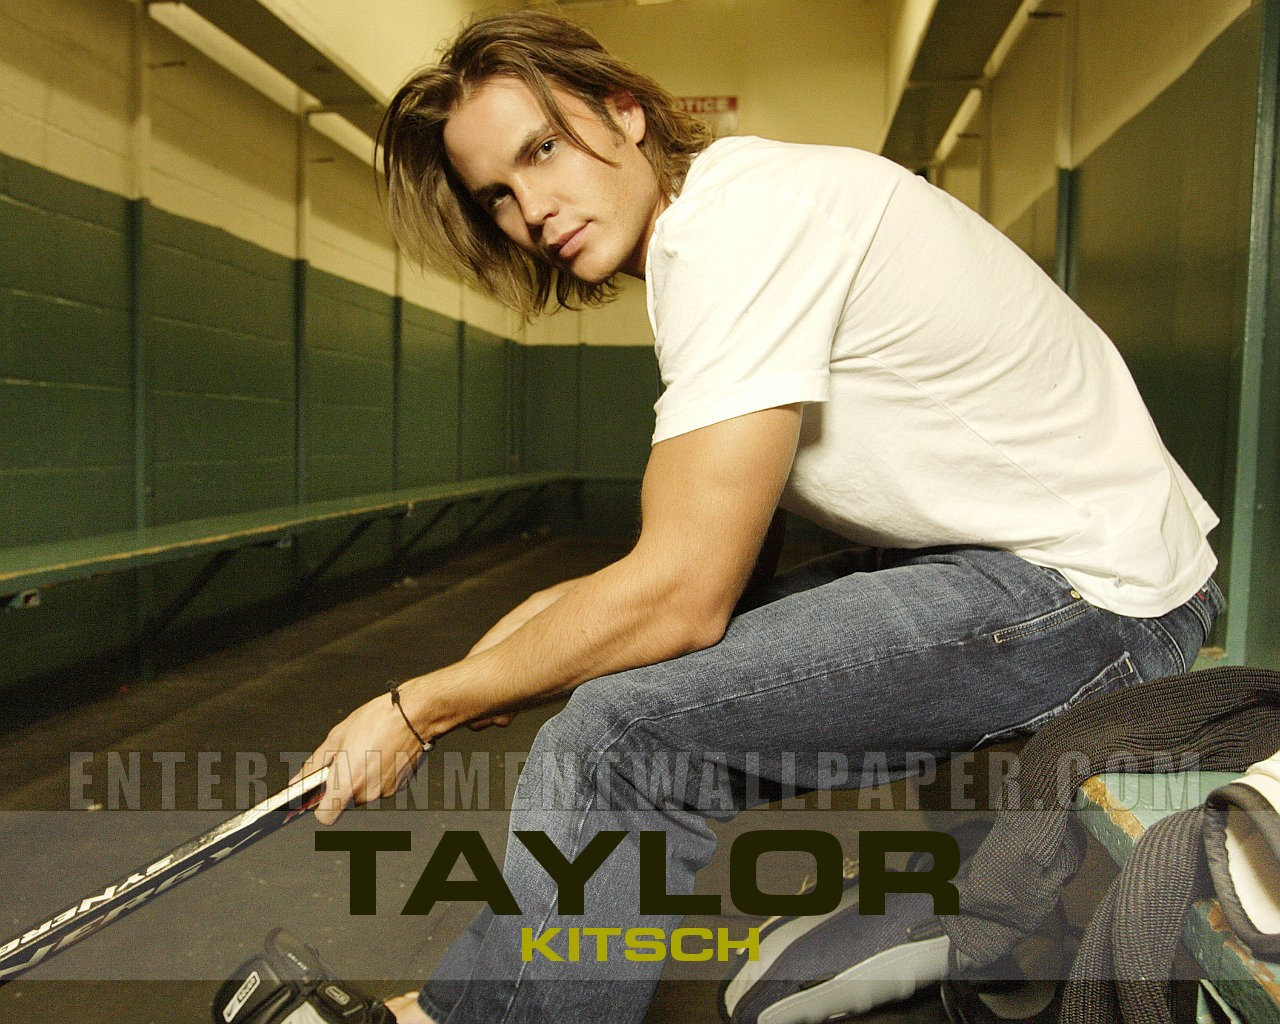 1280x1024 - Taylor Kitsch Wallpapers 24